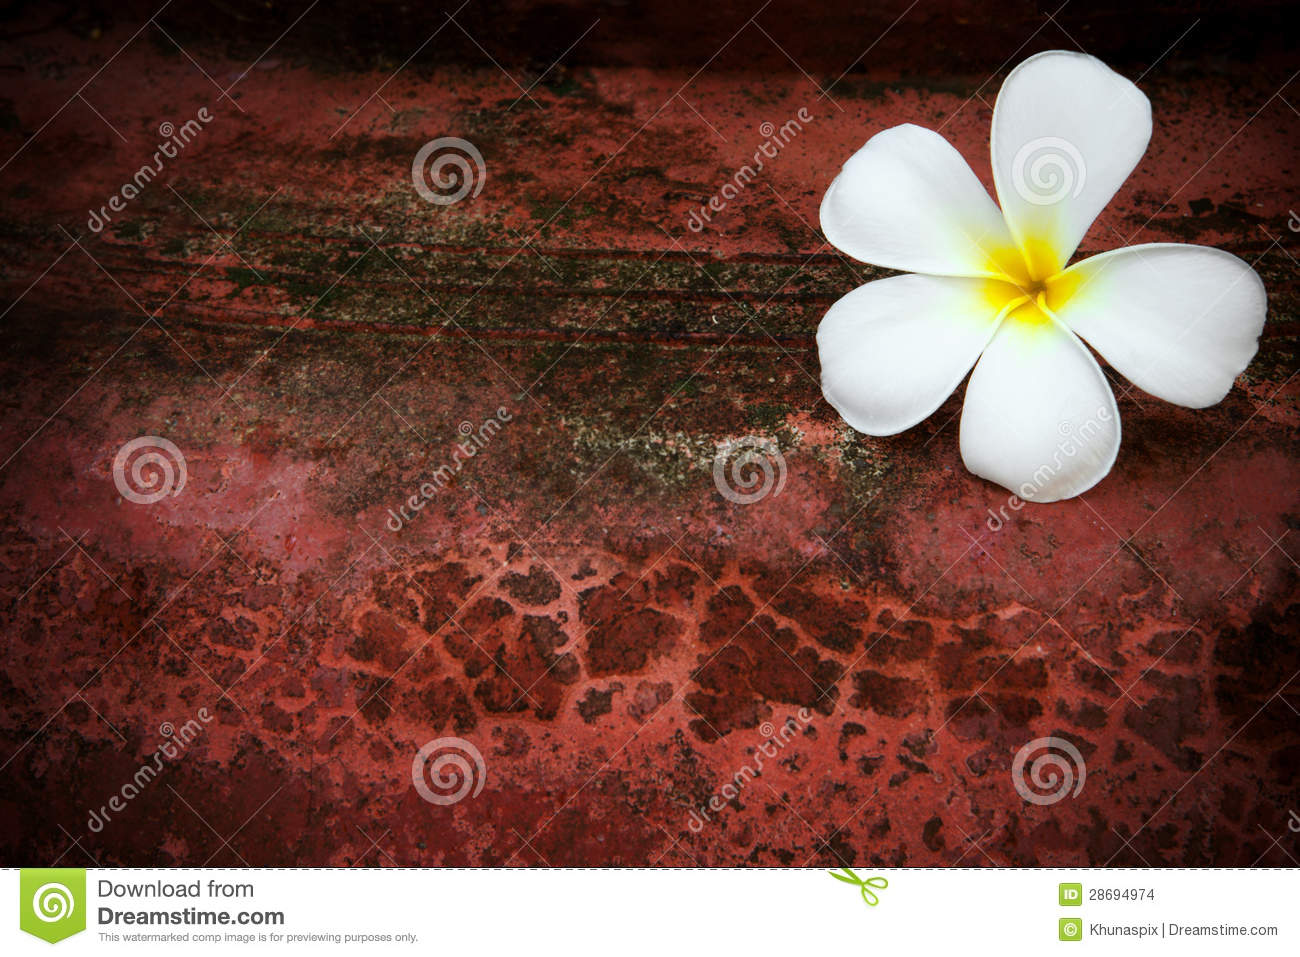 White frangipani flower on red grungy background